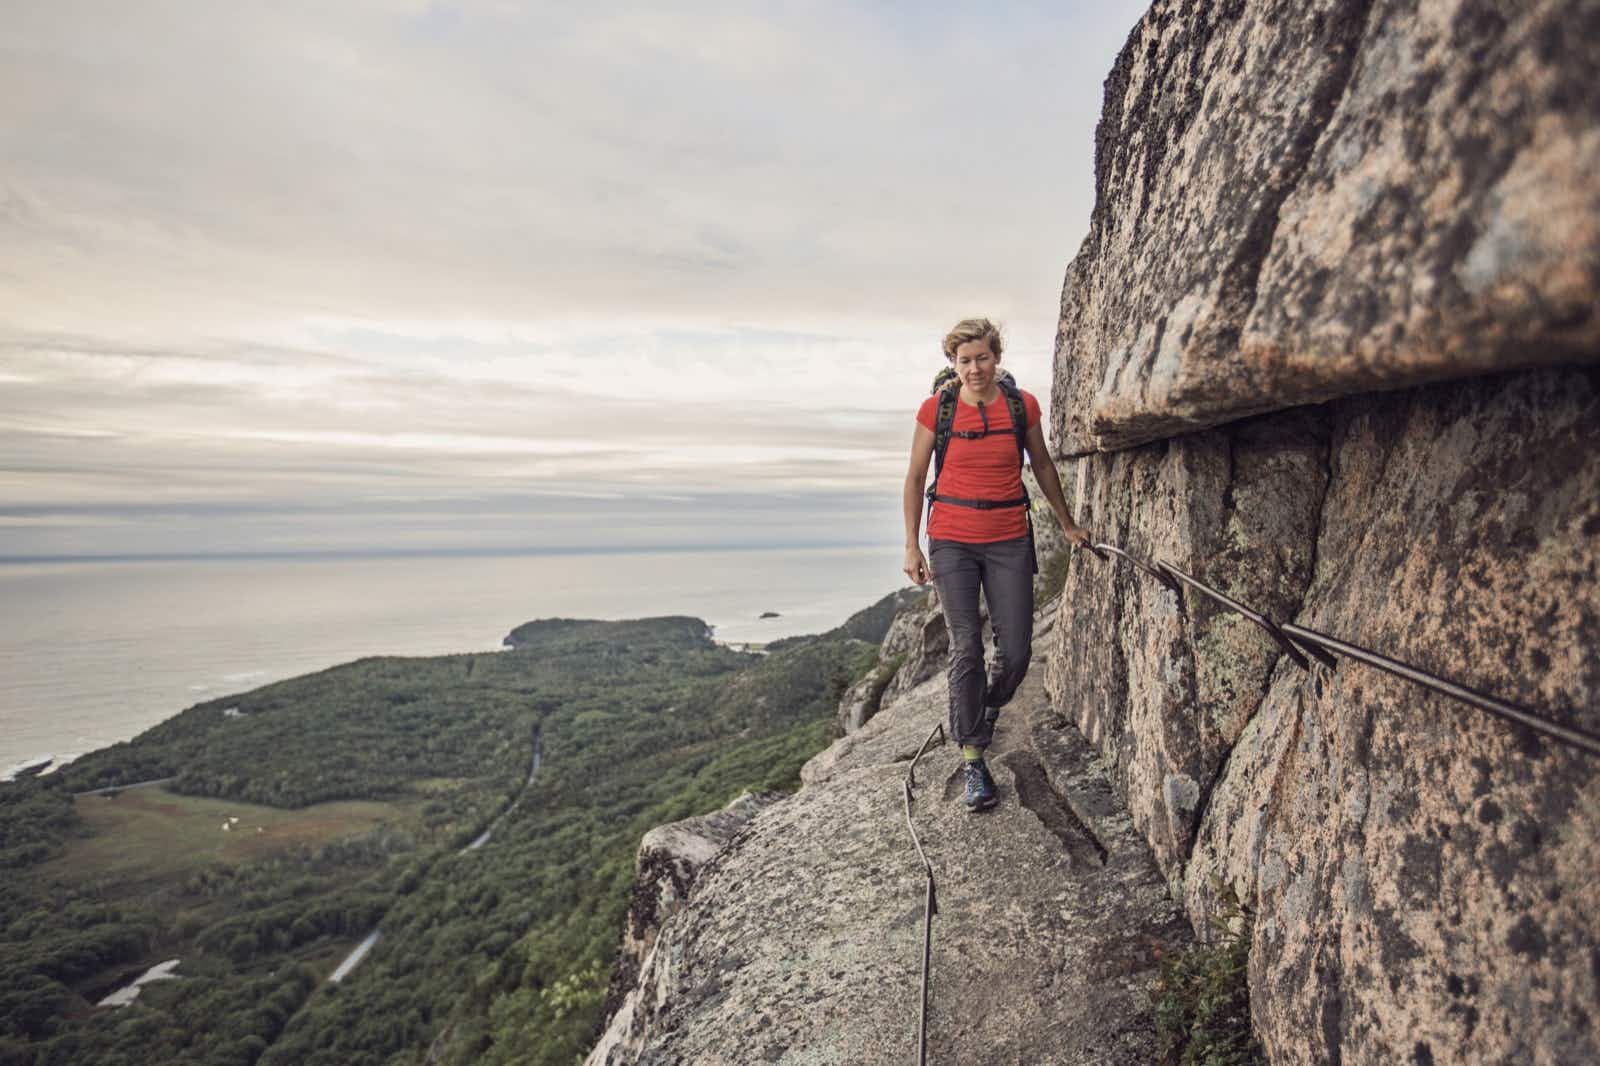 Conquer your fear of heights at Acadia National Park